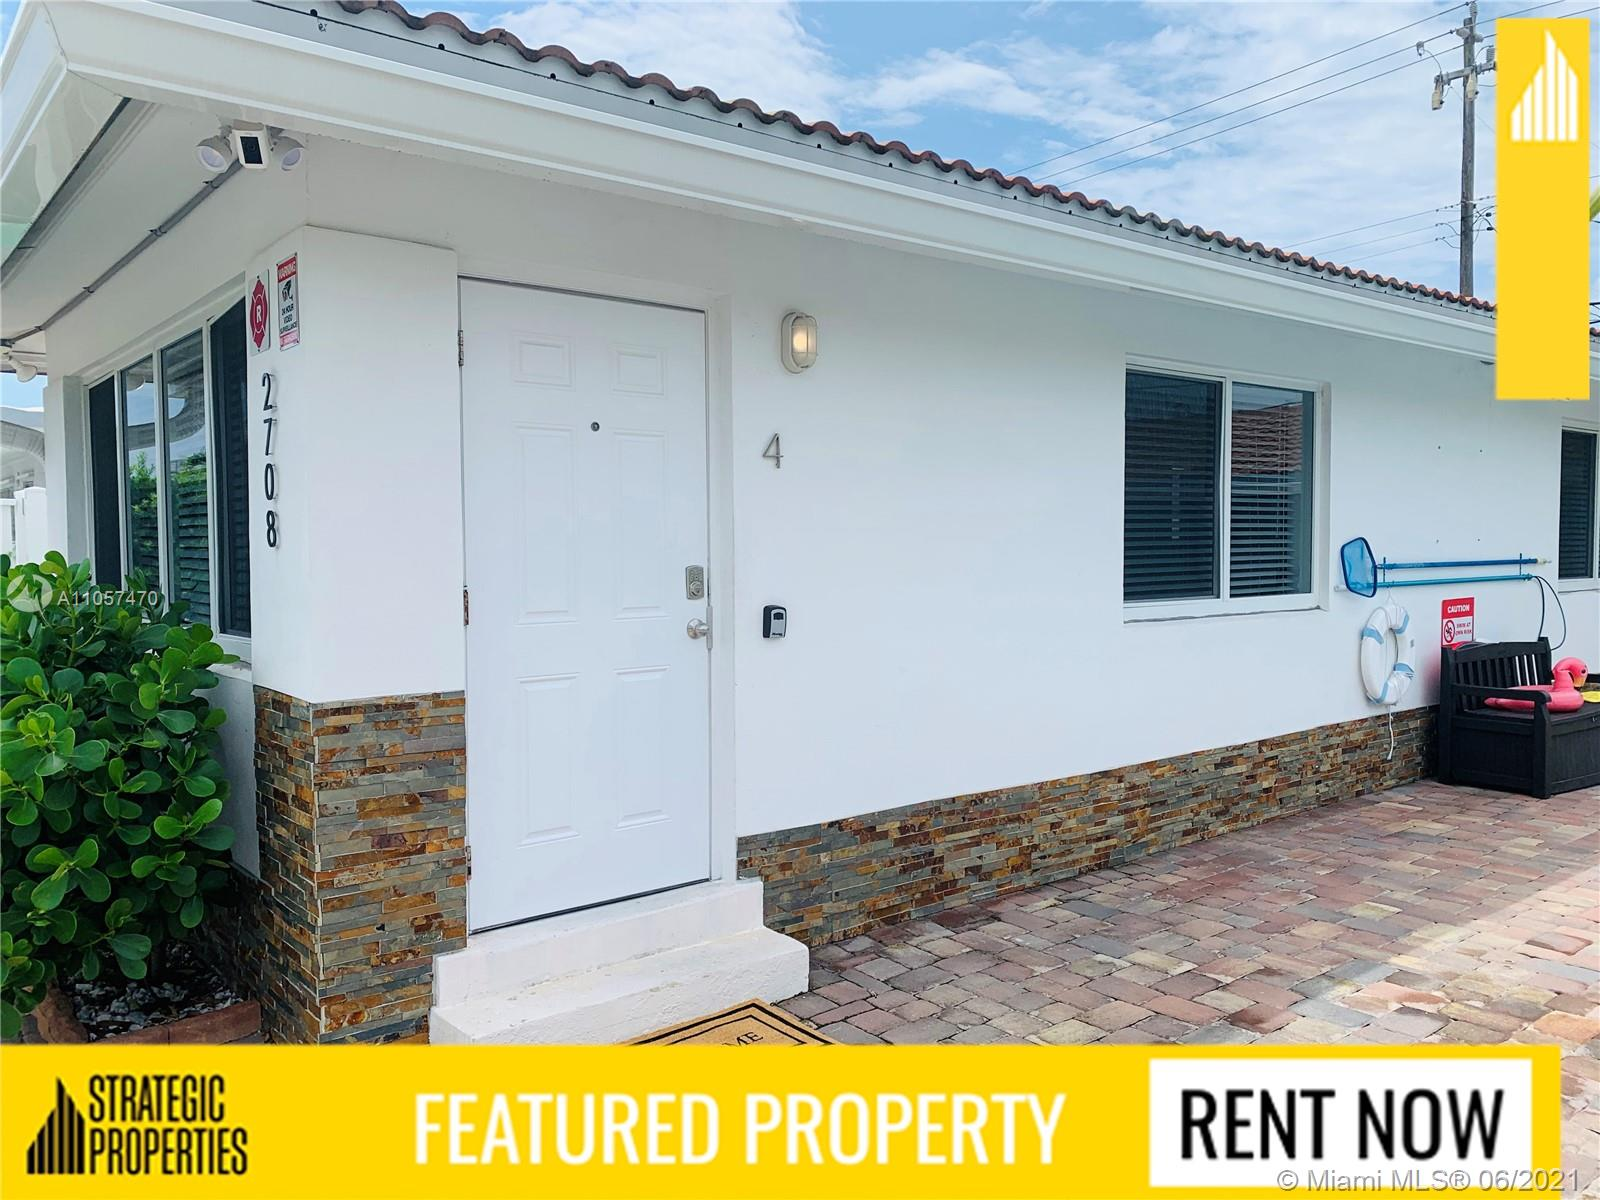 Modern and trendy 1bed x 1bath apartment! - Corner unit - Lots of light - Tile floors - Washer and dryer in unit - Central A/C - White appliances (stove, microwave, refrigerator and dishwasher) - Two big closets - Assigned parking - Pool on building